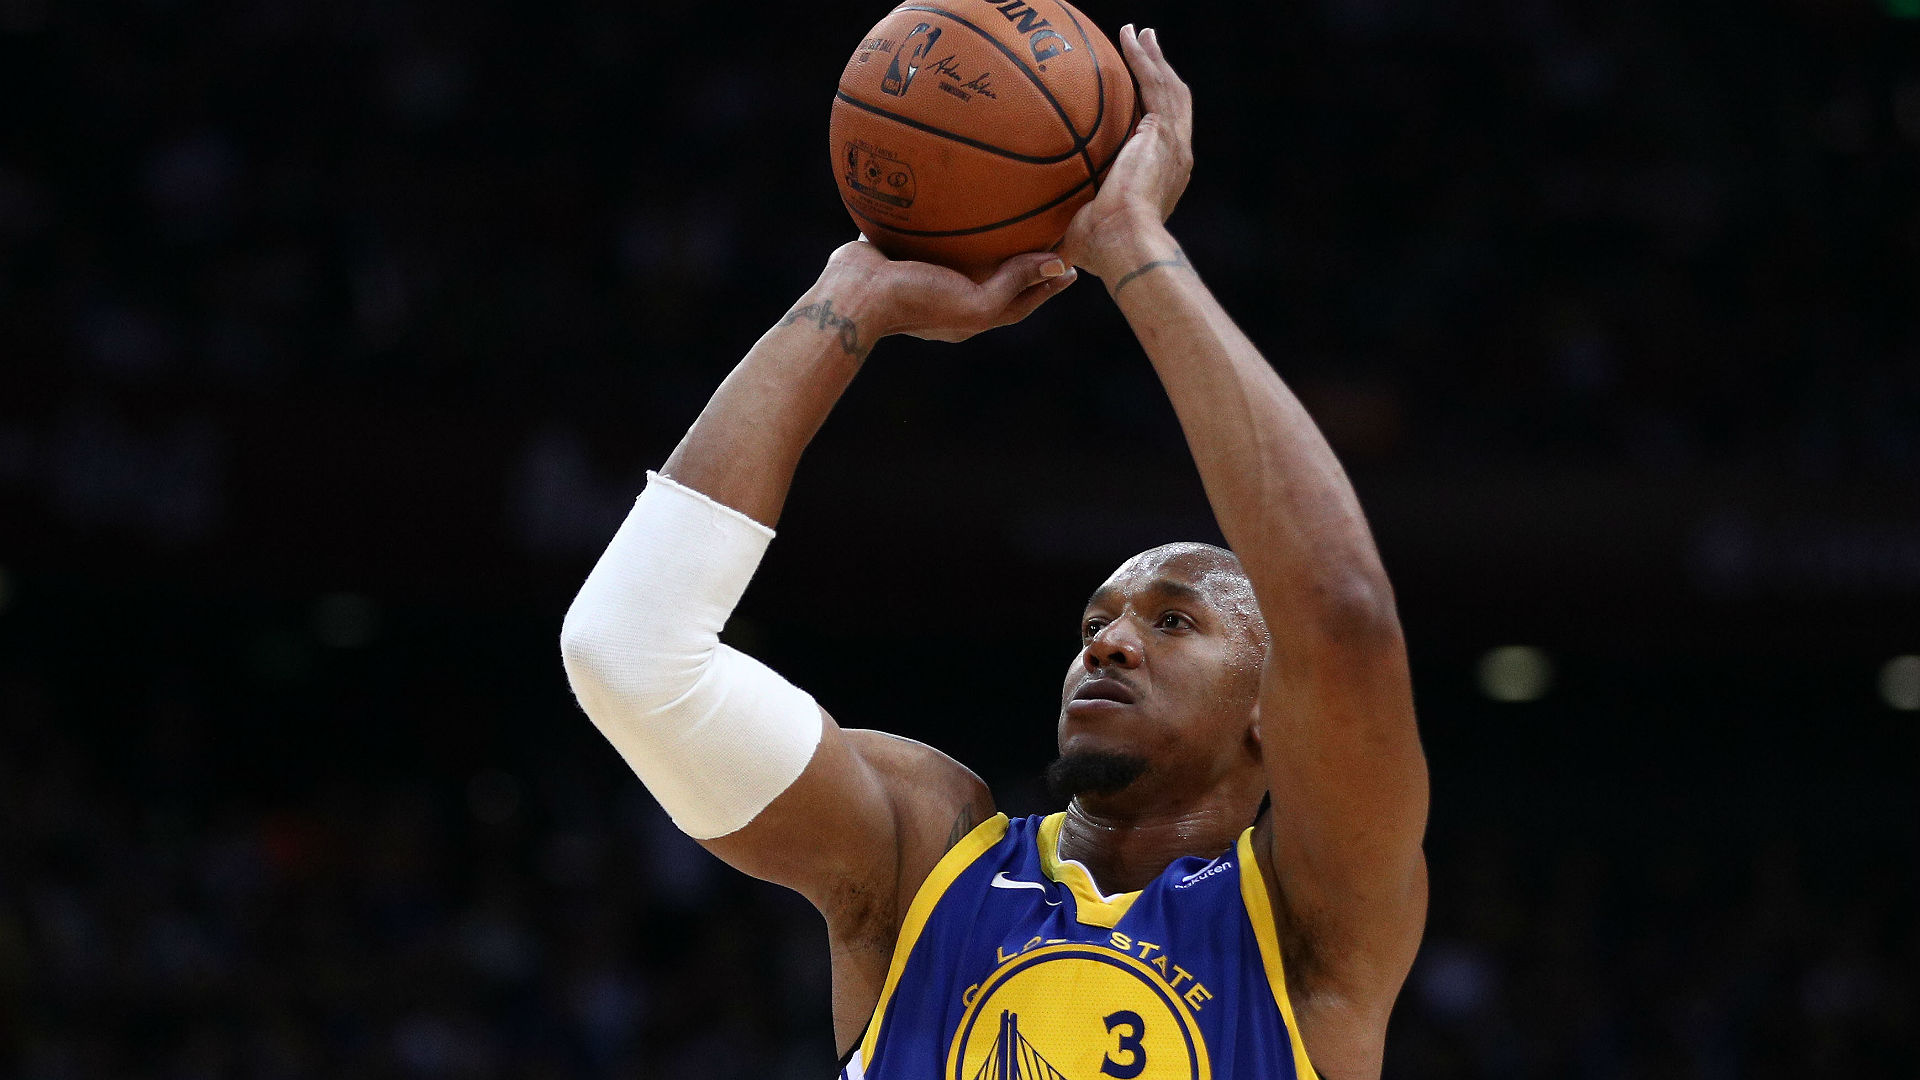 Warriors assistant says he is 'a little mystified' by David West's comment about team drama